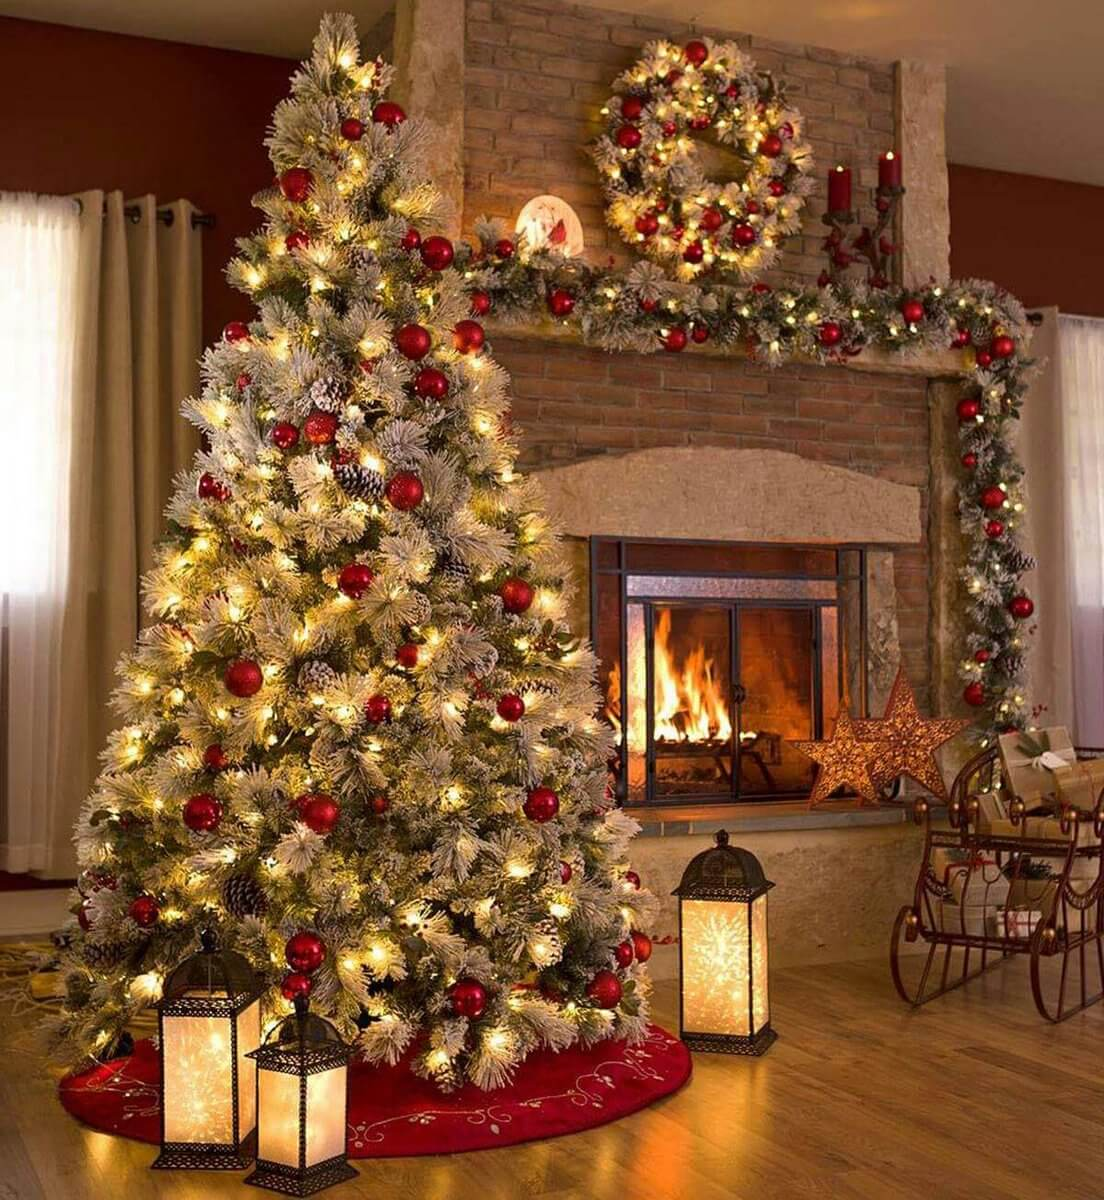 32 Best Christmas Living Room Decor Ideas and Designs for 2020